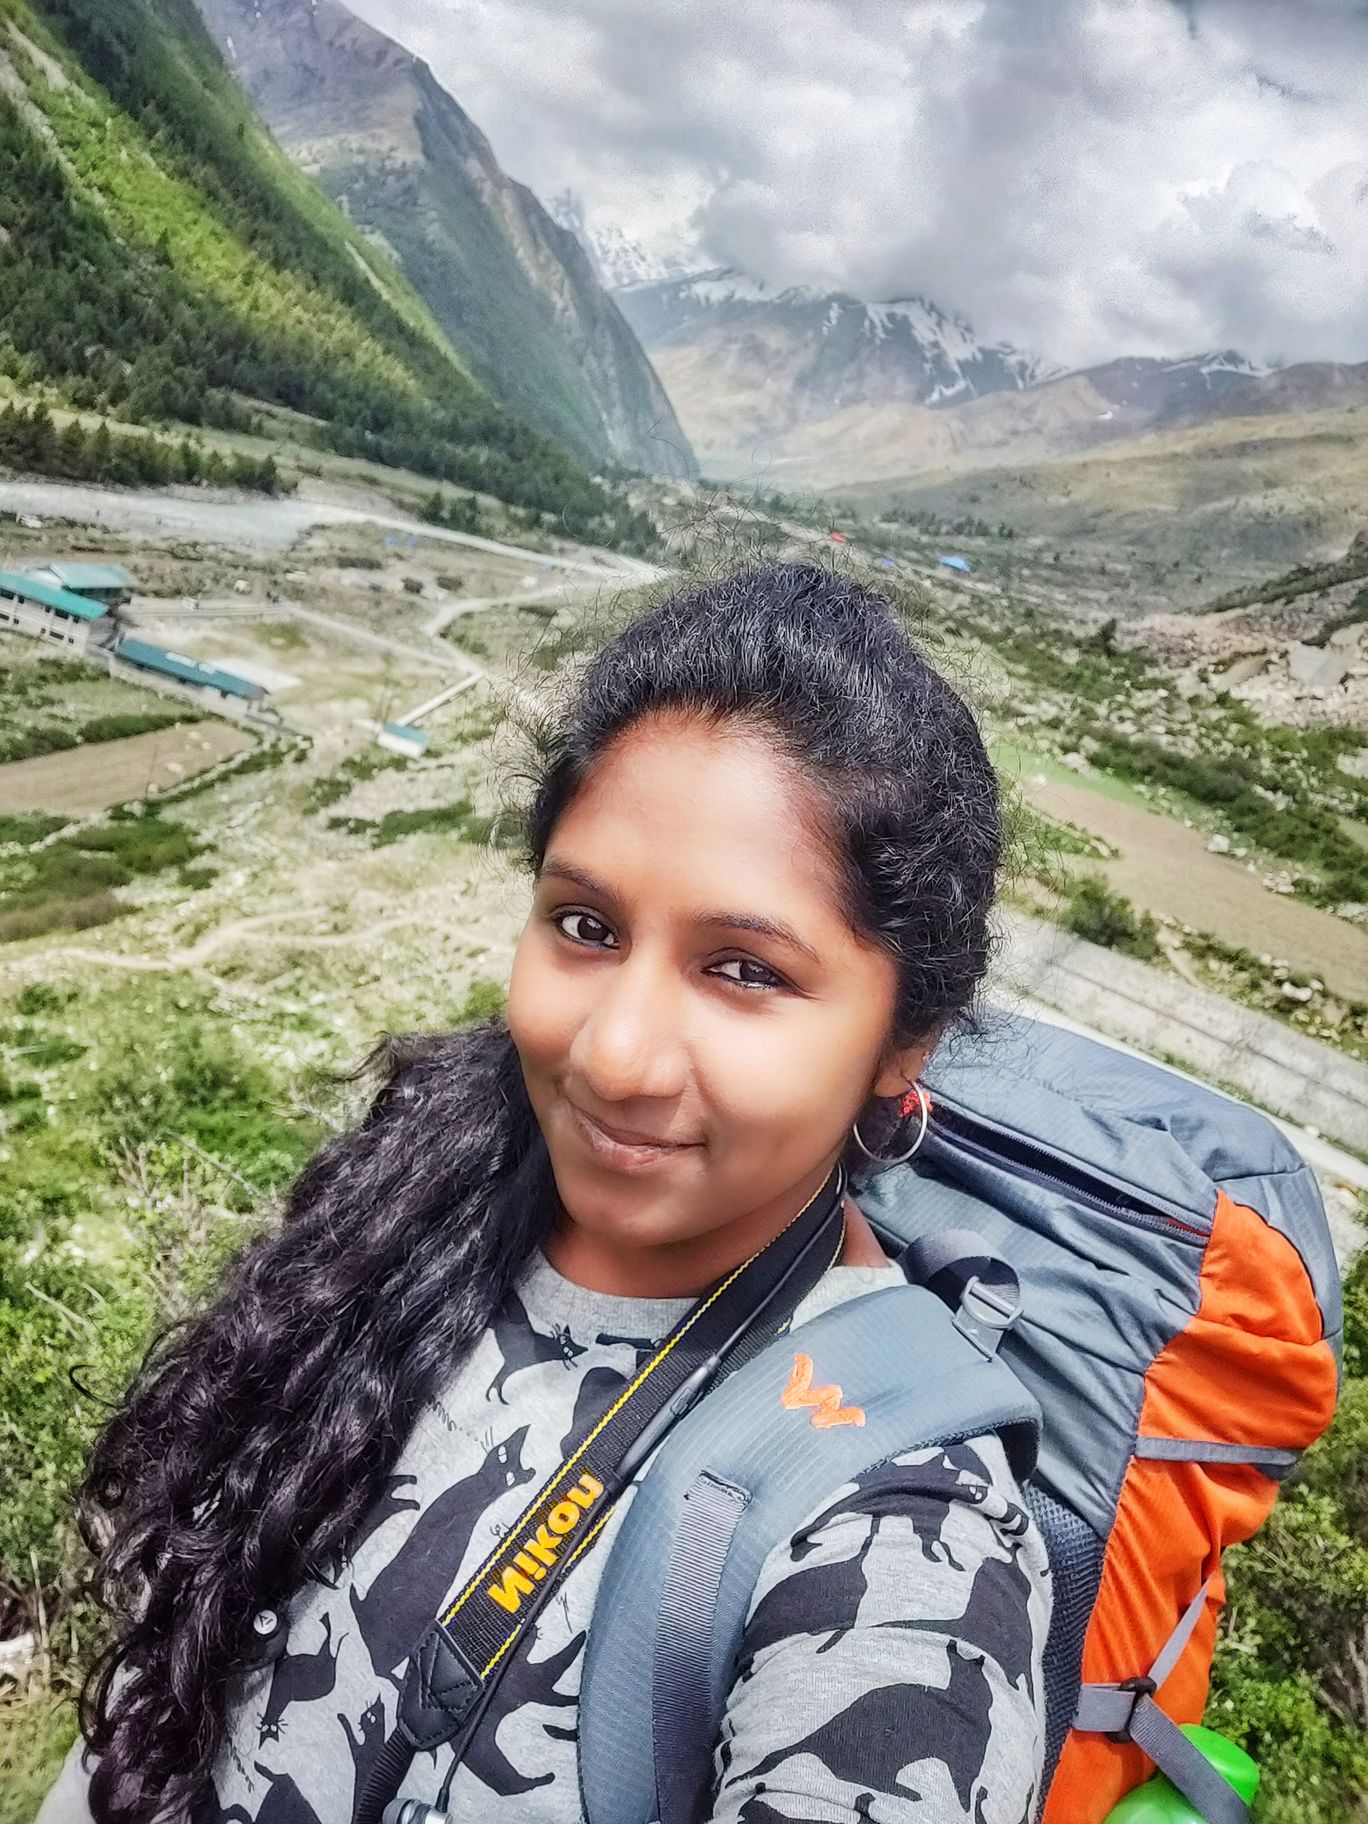 Photo of Chitkul By chaitra ss aru